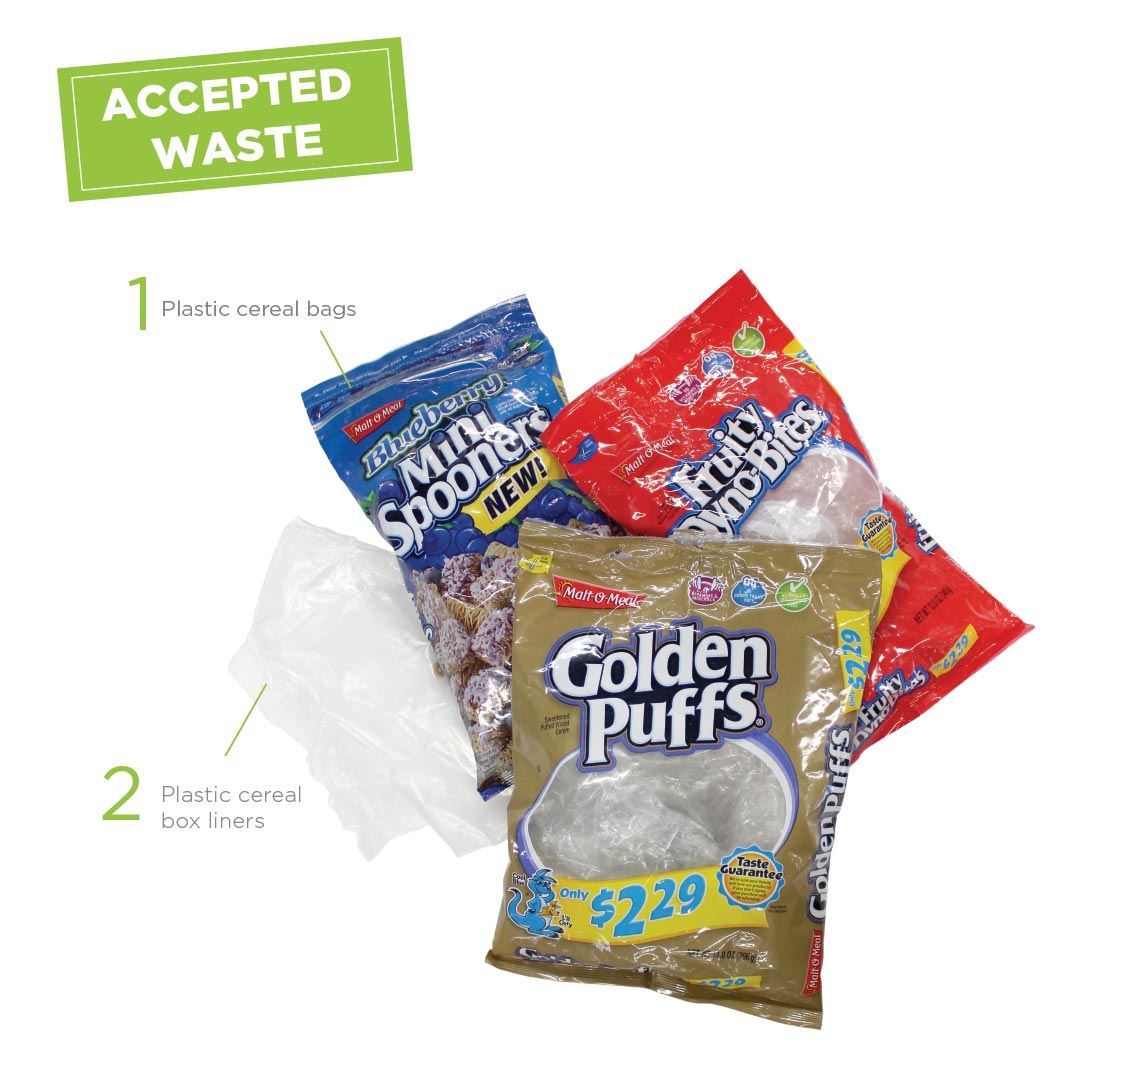 MOM Brands Cereal Bag Recycling Program Accepted Waste